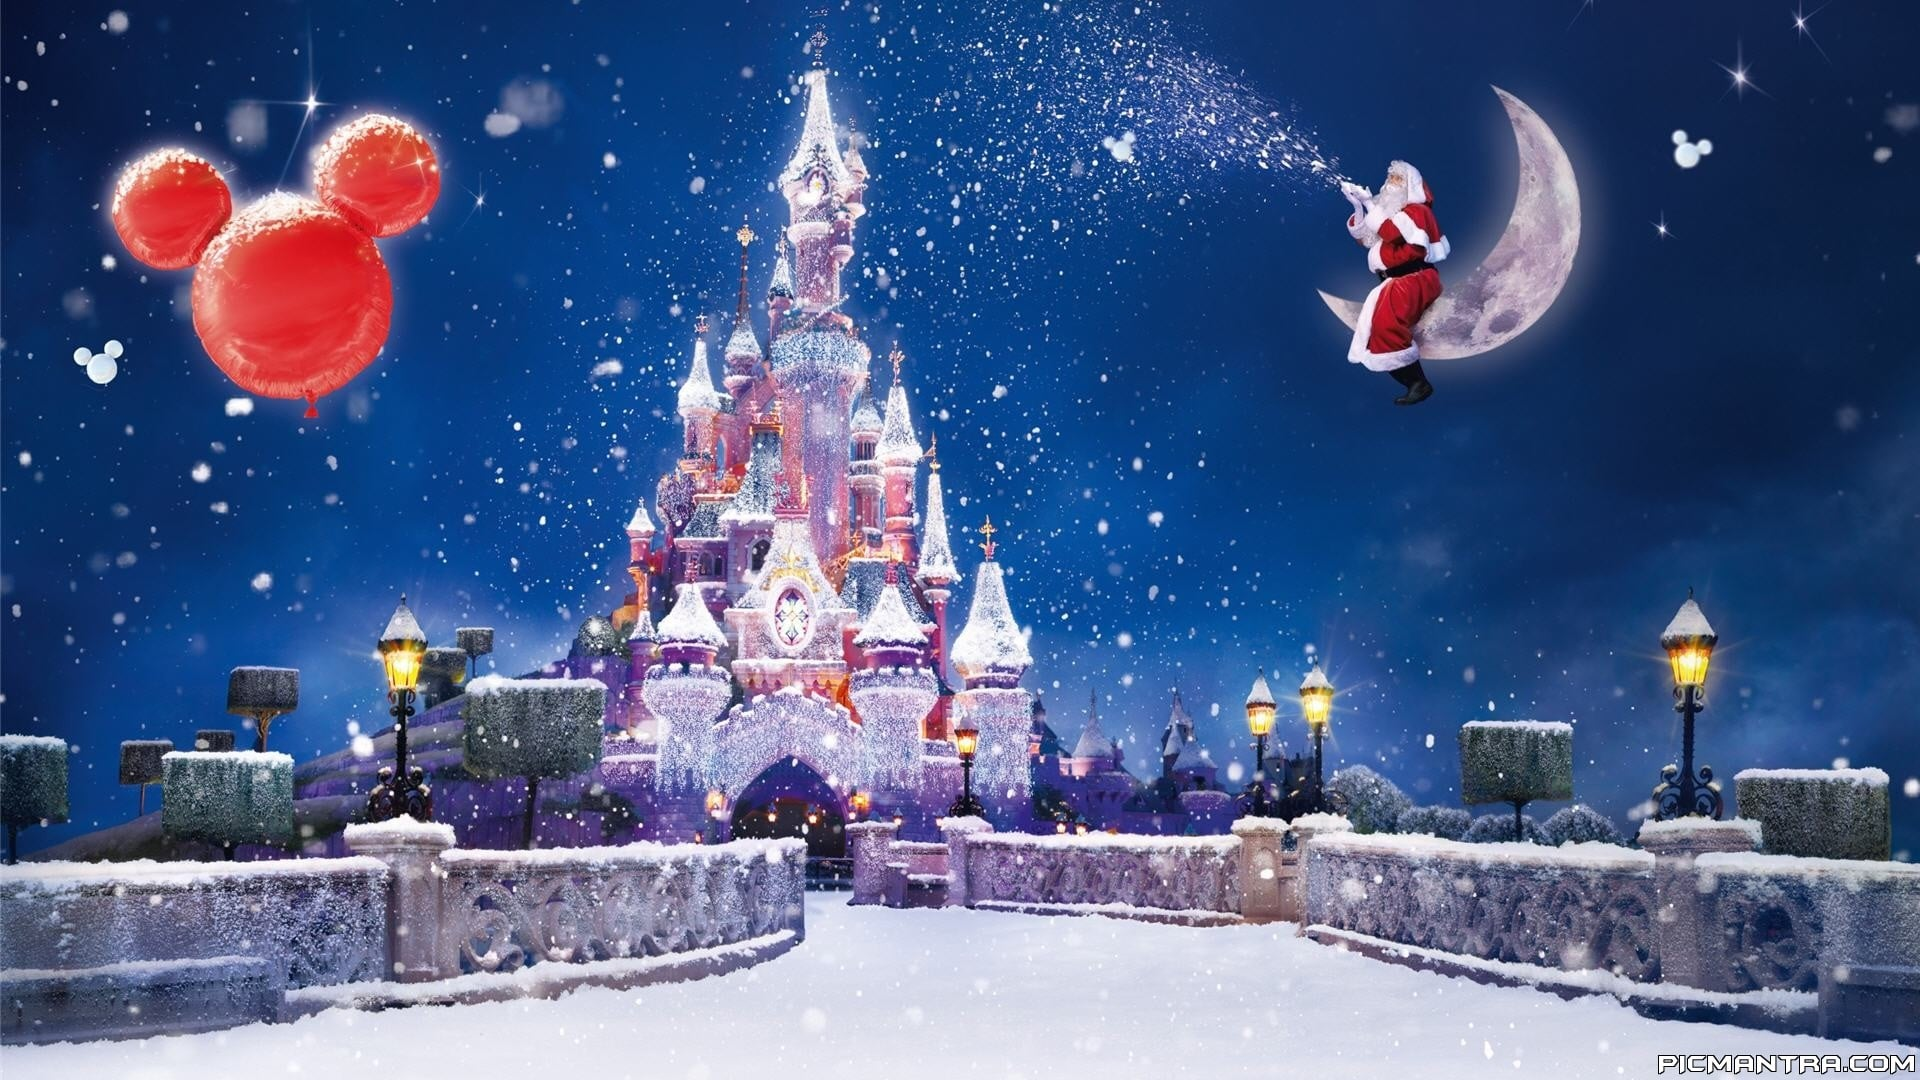 Christmas Disney Full Hd Image Hd Image 20 On Wallpapersqq